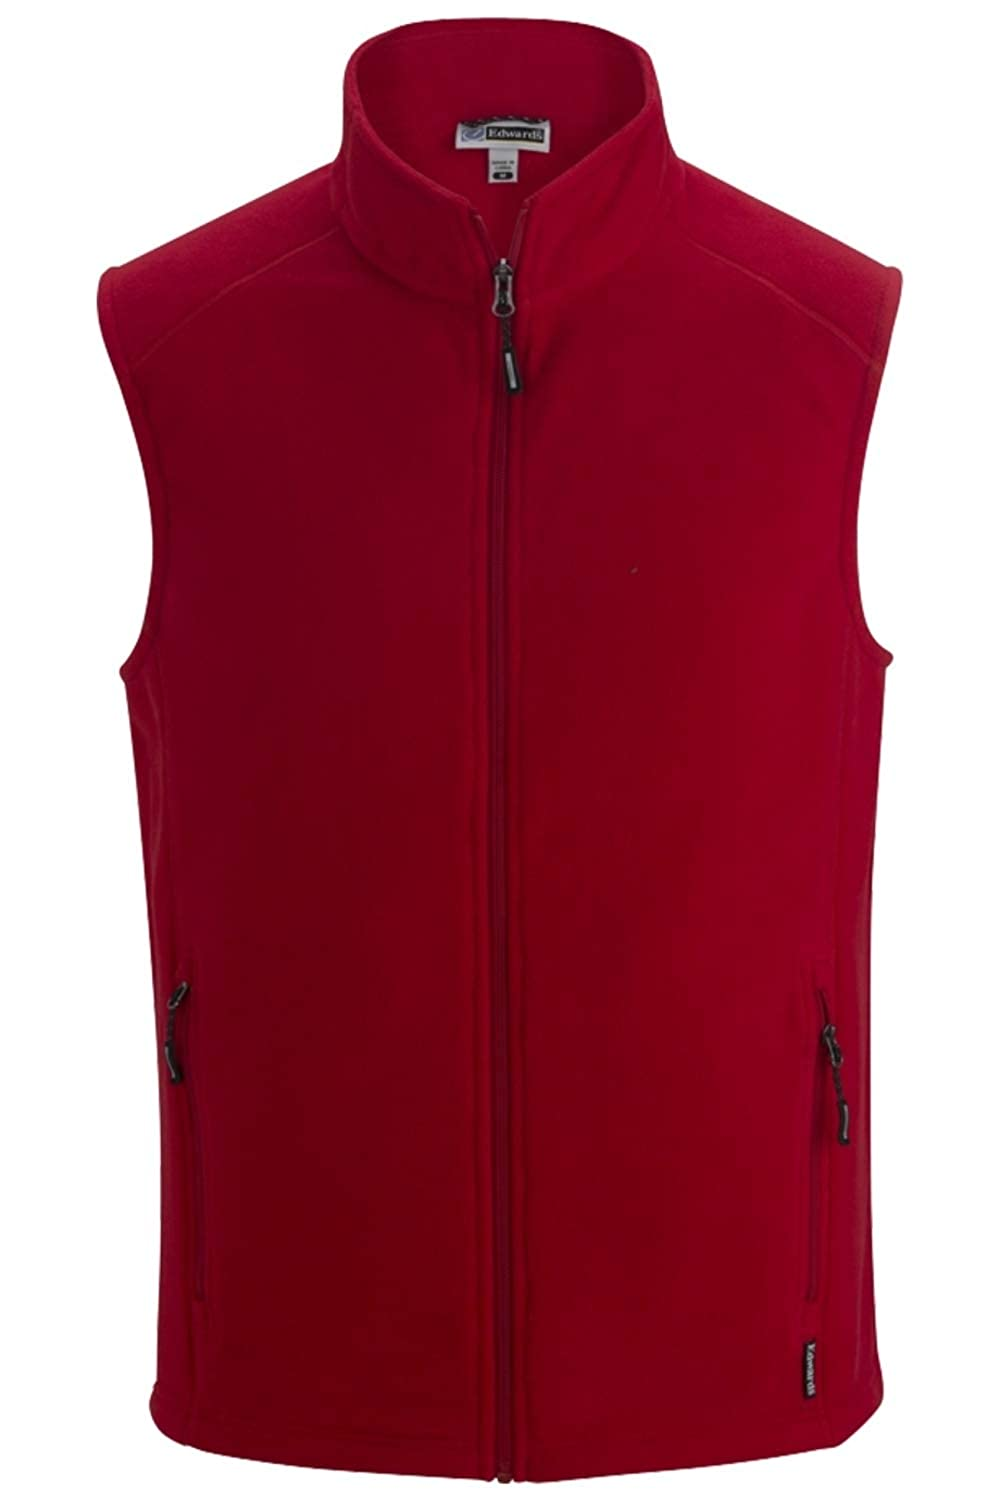 Big and Tall Fleece Vest up to 6X in 6 Colors 3455